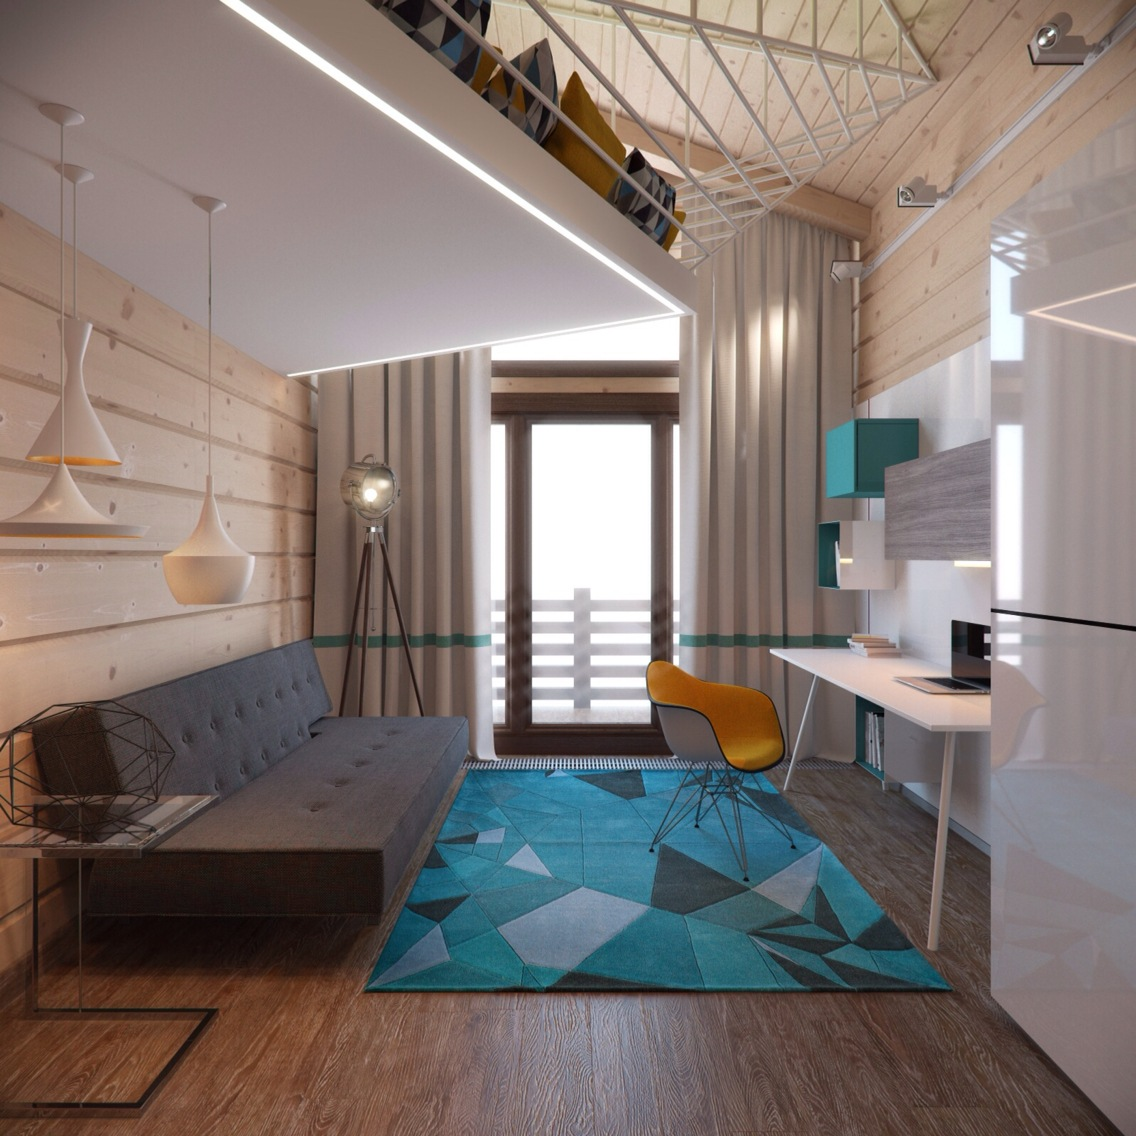 3 creative top floor rooms with wood accents A sleek apartment the divides rooms creatively